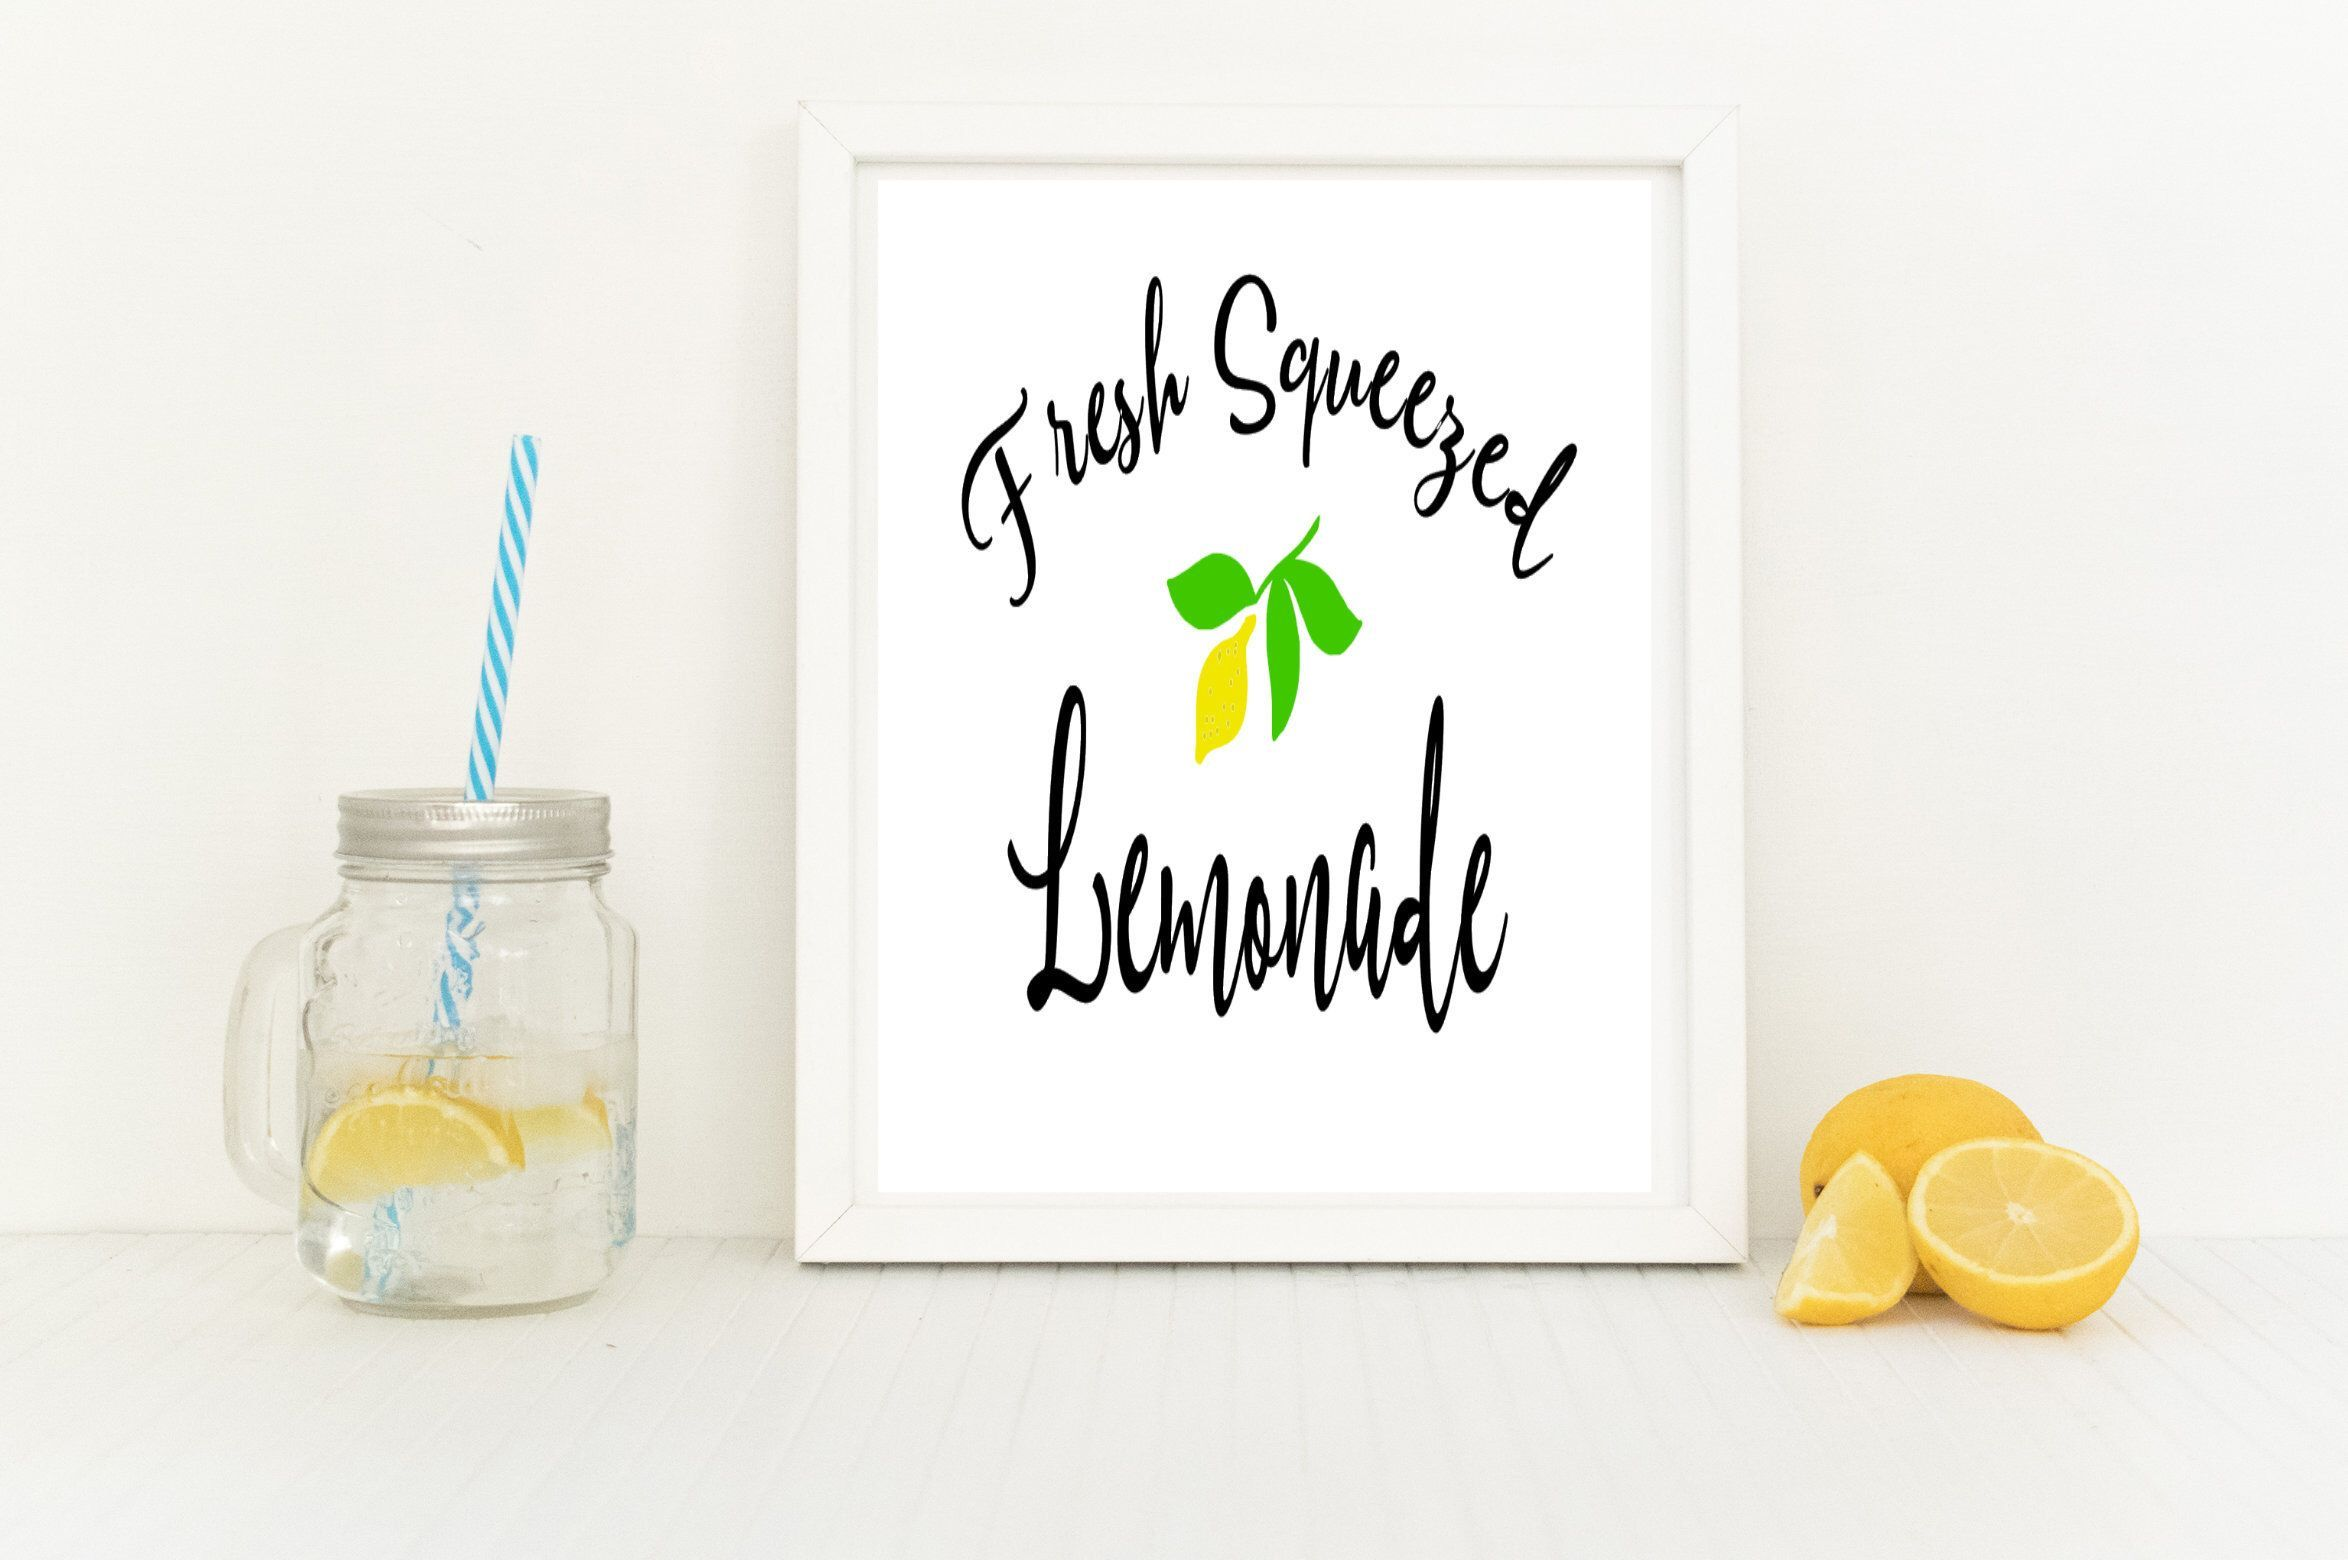 Fresh Squeezed Lemonade, Fresh Squeezed Lemons, Fresh Lemonade, Squeezed, Stencils for Wood Signs, Stencils for Wood, Stencils for Painting #freshsqueezedlemonade Ah those summer days on the porch with a glass of fresh squeezed lemonade bring back memories. This stencil will help you create a little of the nostalgia from the past. I am excited to share the latest addition to my #etsy shop: Excited to share the latest addition to my #etsy shop: Fresh Squeezed Lemonade, Fresh Squeezed, Fresh Lemon #freshsqueezedlemonade